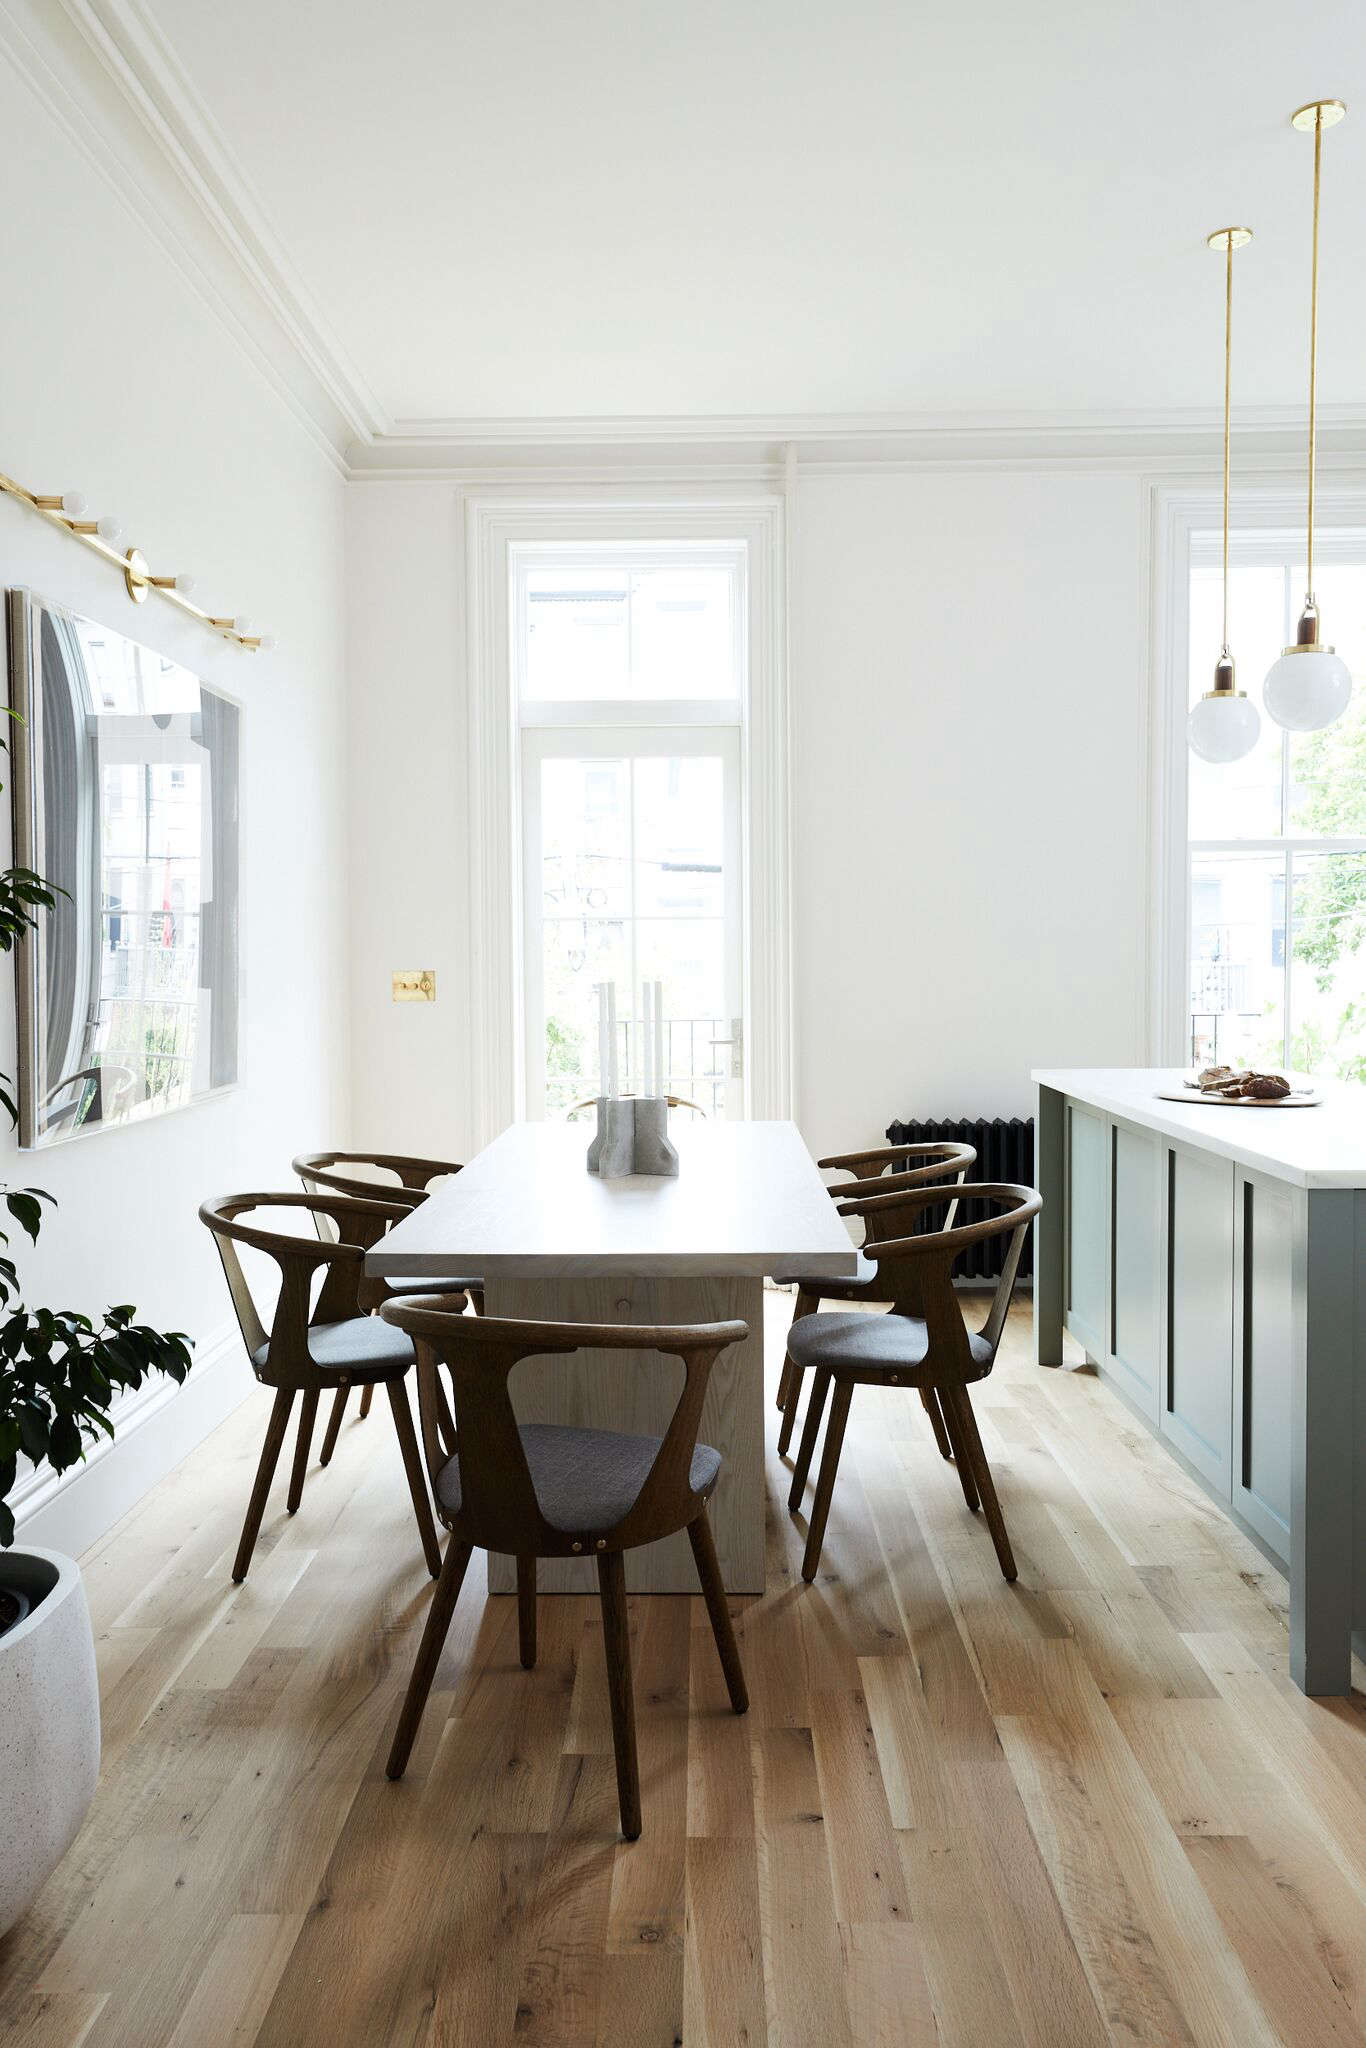 The dining room adjacent to the kitchen island. Photograph by Nicole Franzen from Rehab Diary: Monochromatic Luxe in Park Slope.